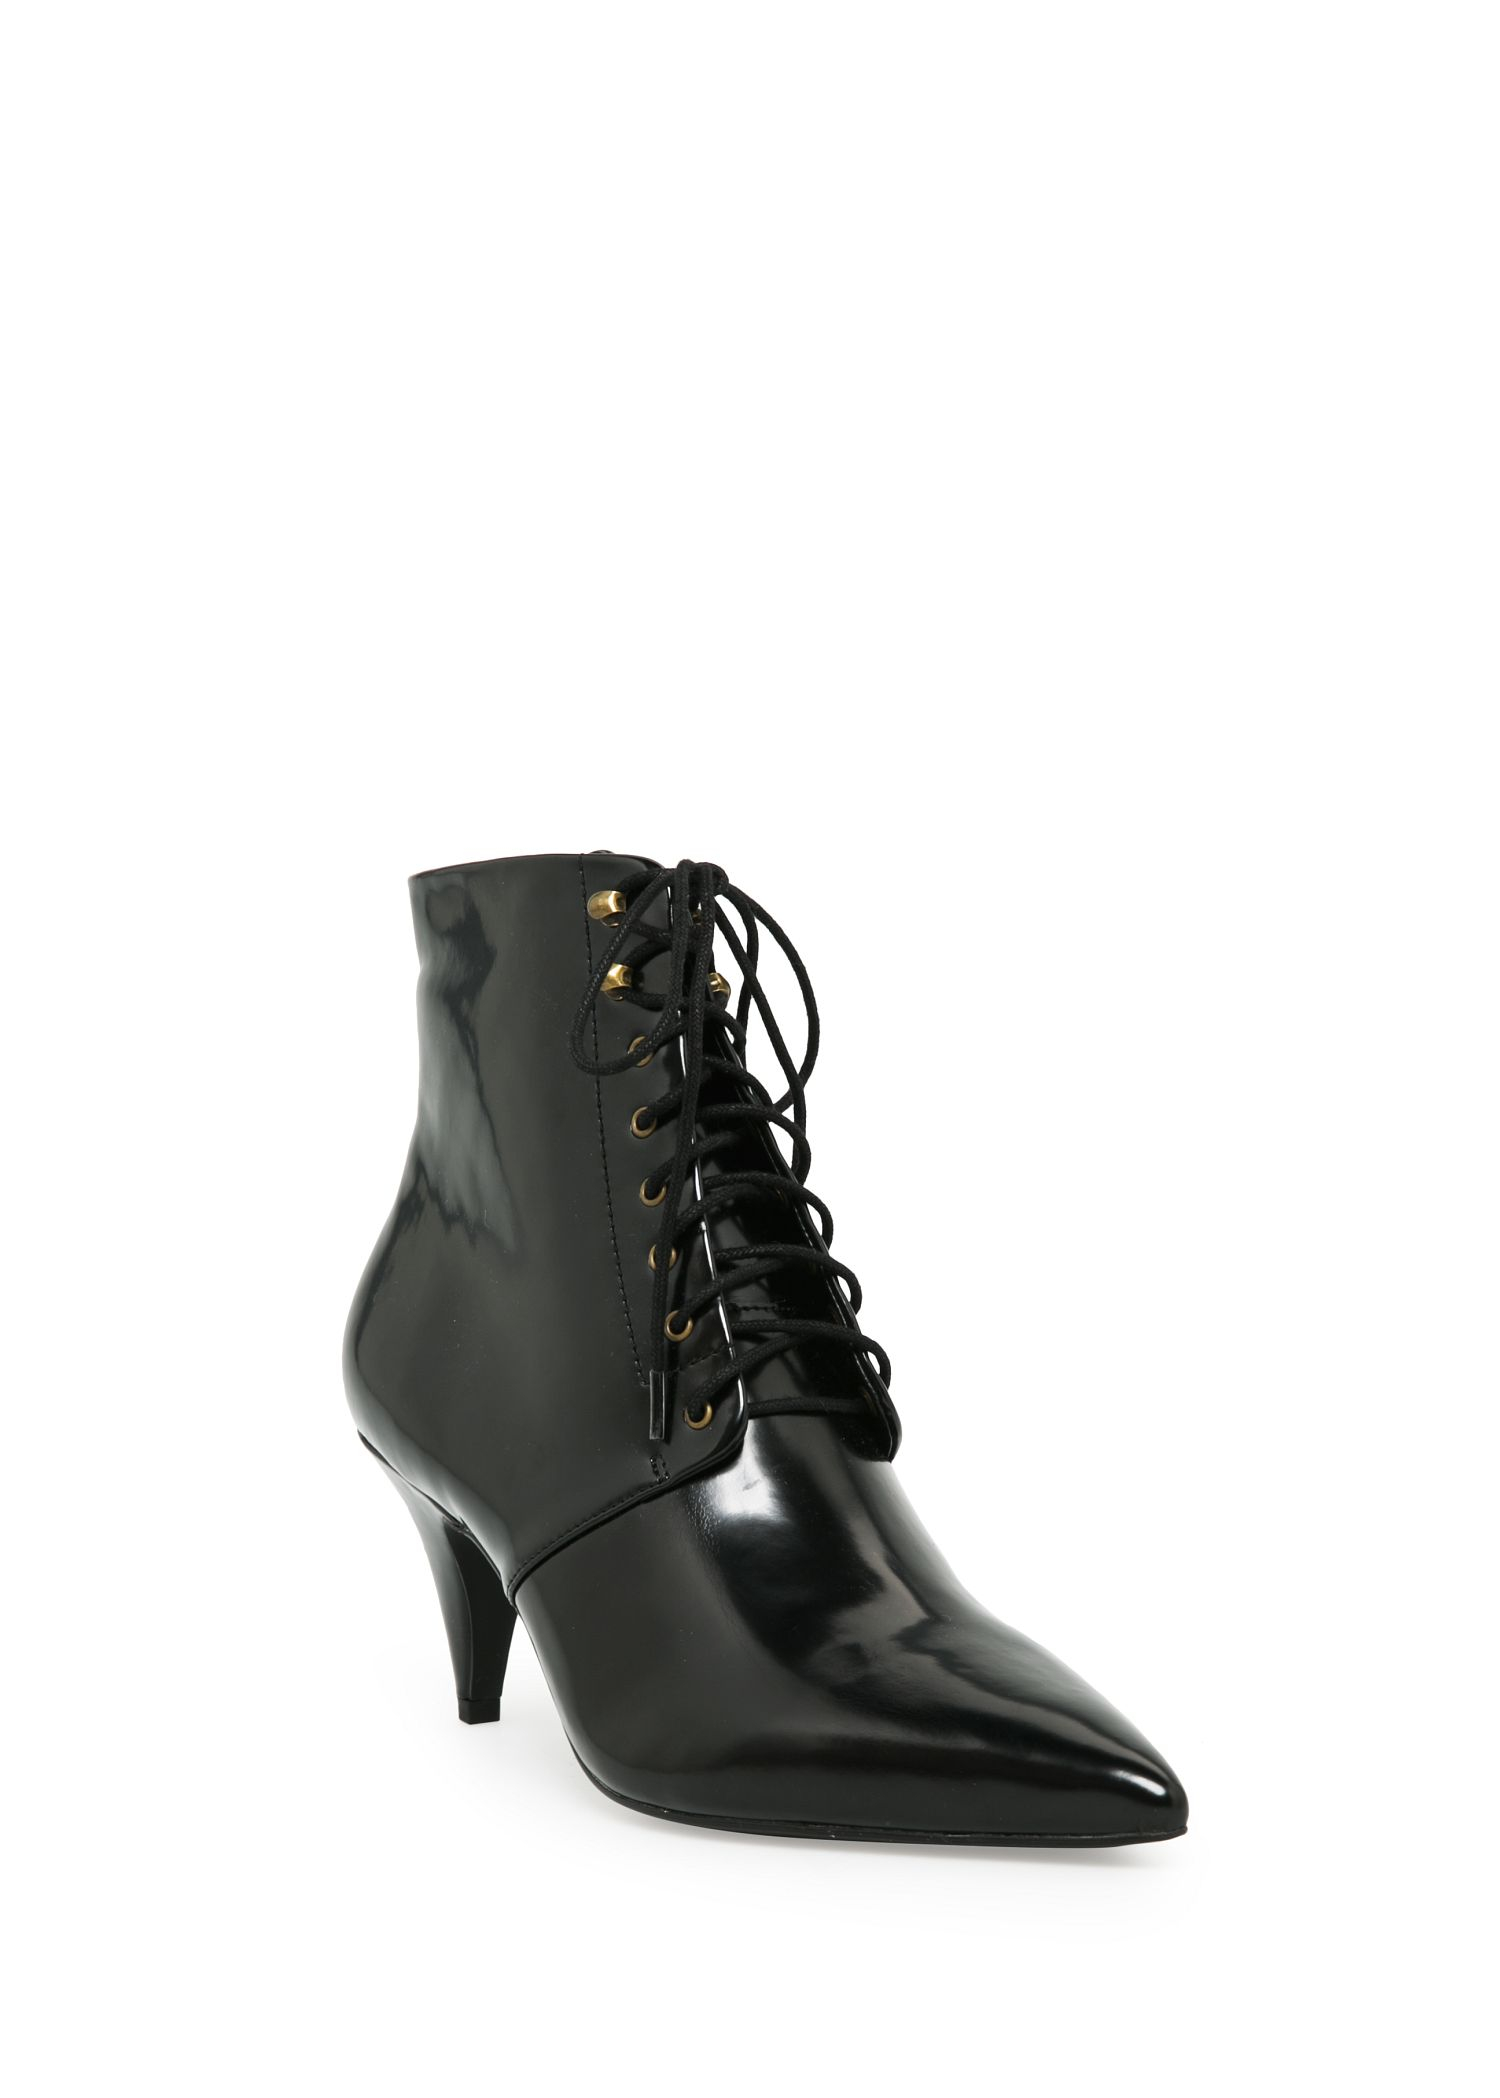 Mango Heel Lace-Up Ankle Boots in Black | Lyst